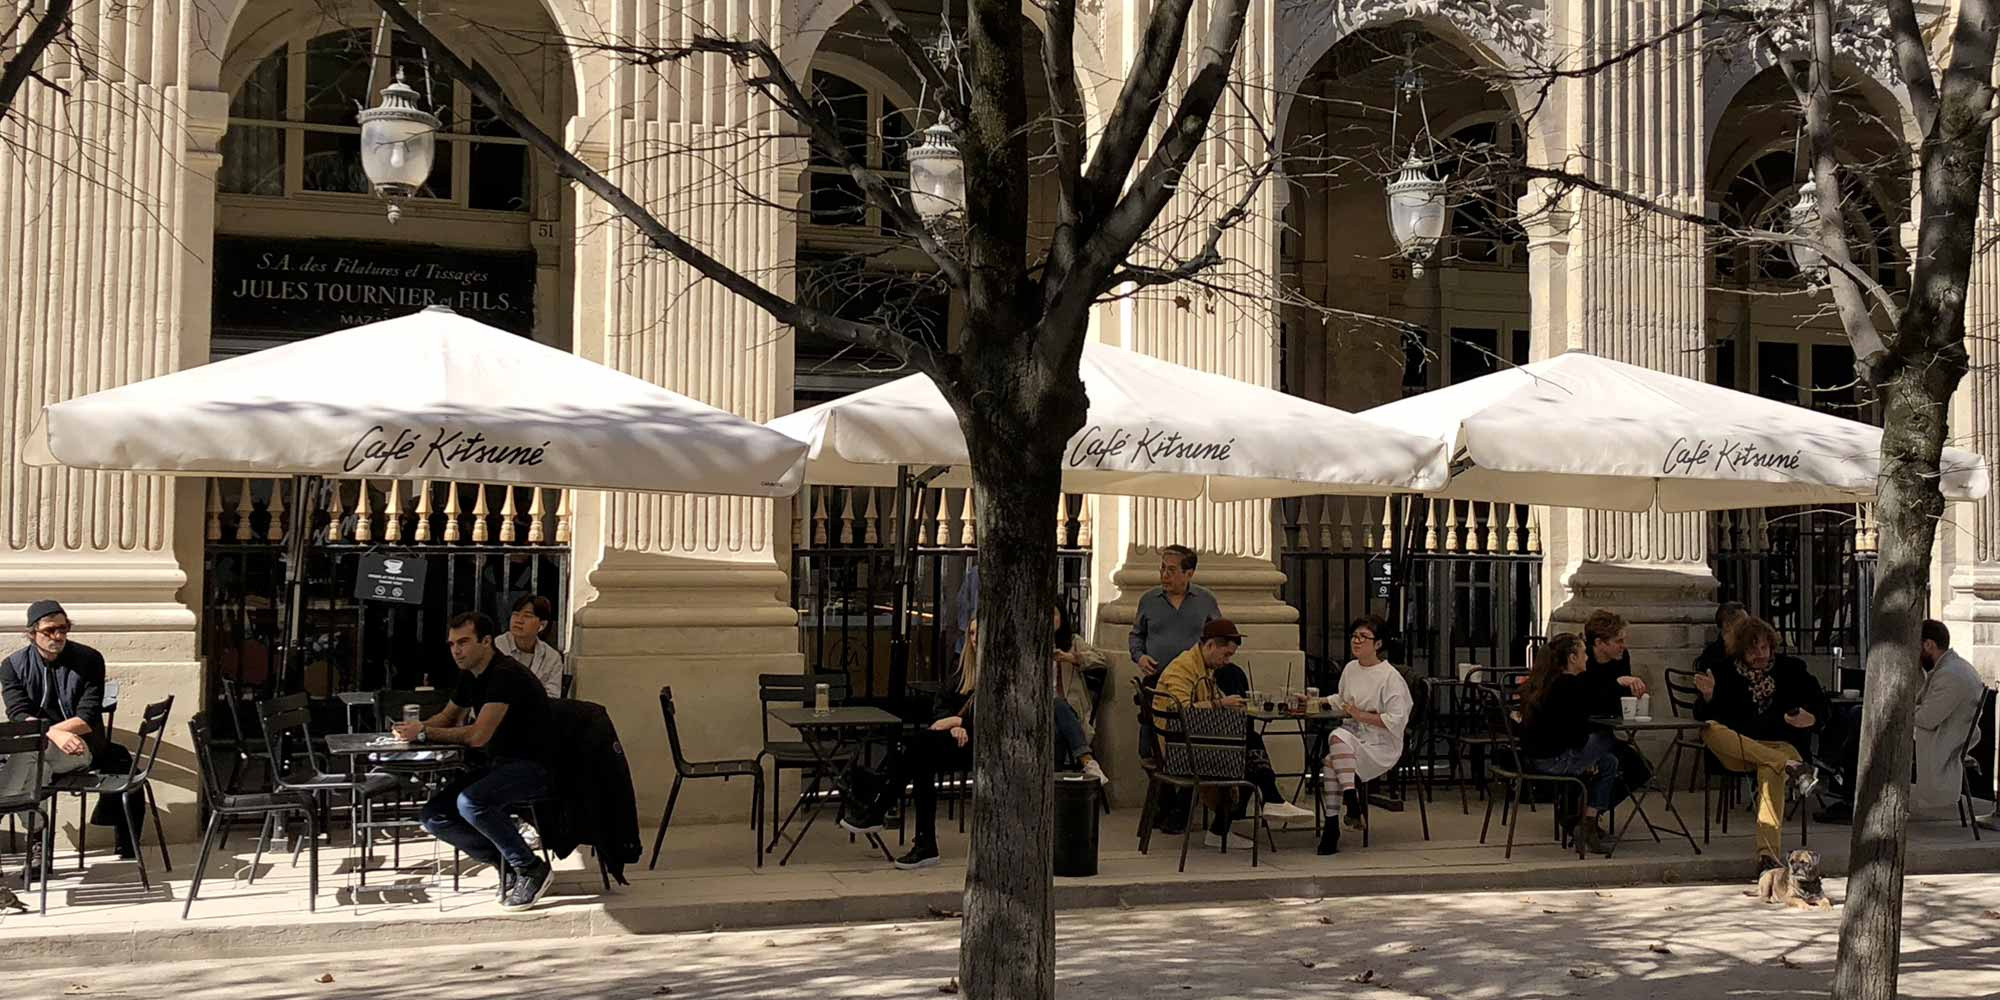 Brunch Café Kitsune (75001 Paris)